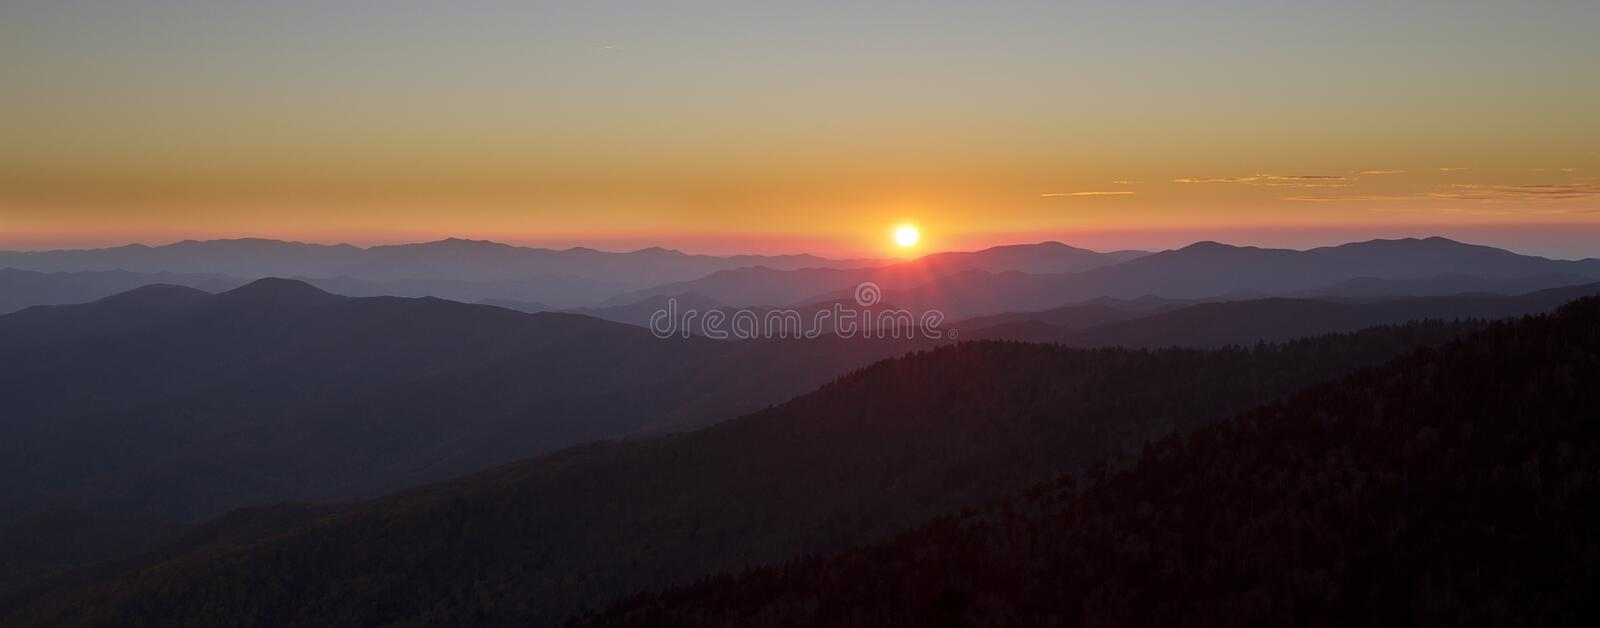 Sunset in Great Smoky Mountains National Park Pano royalty free stock images